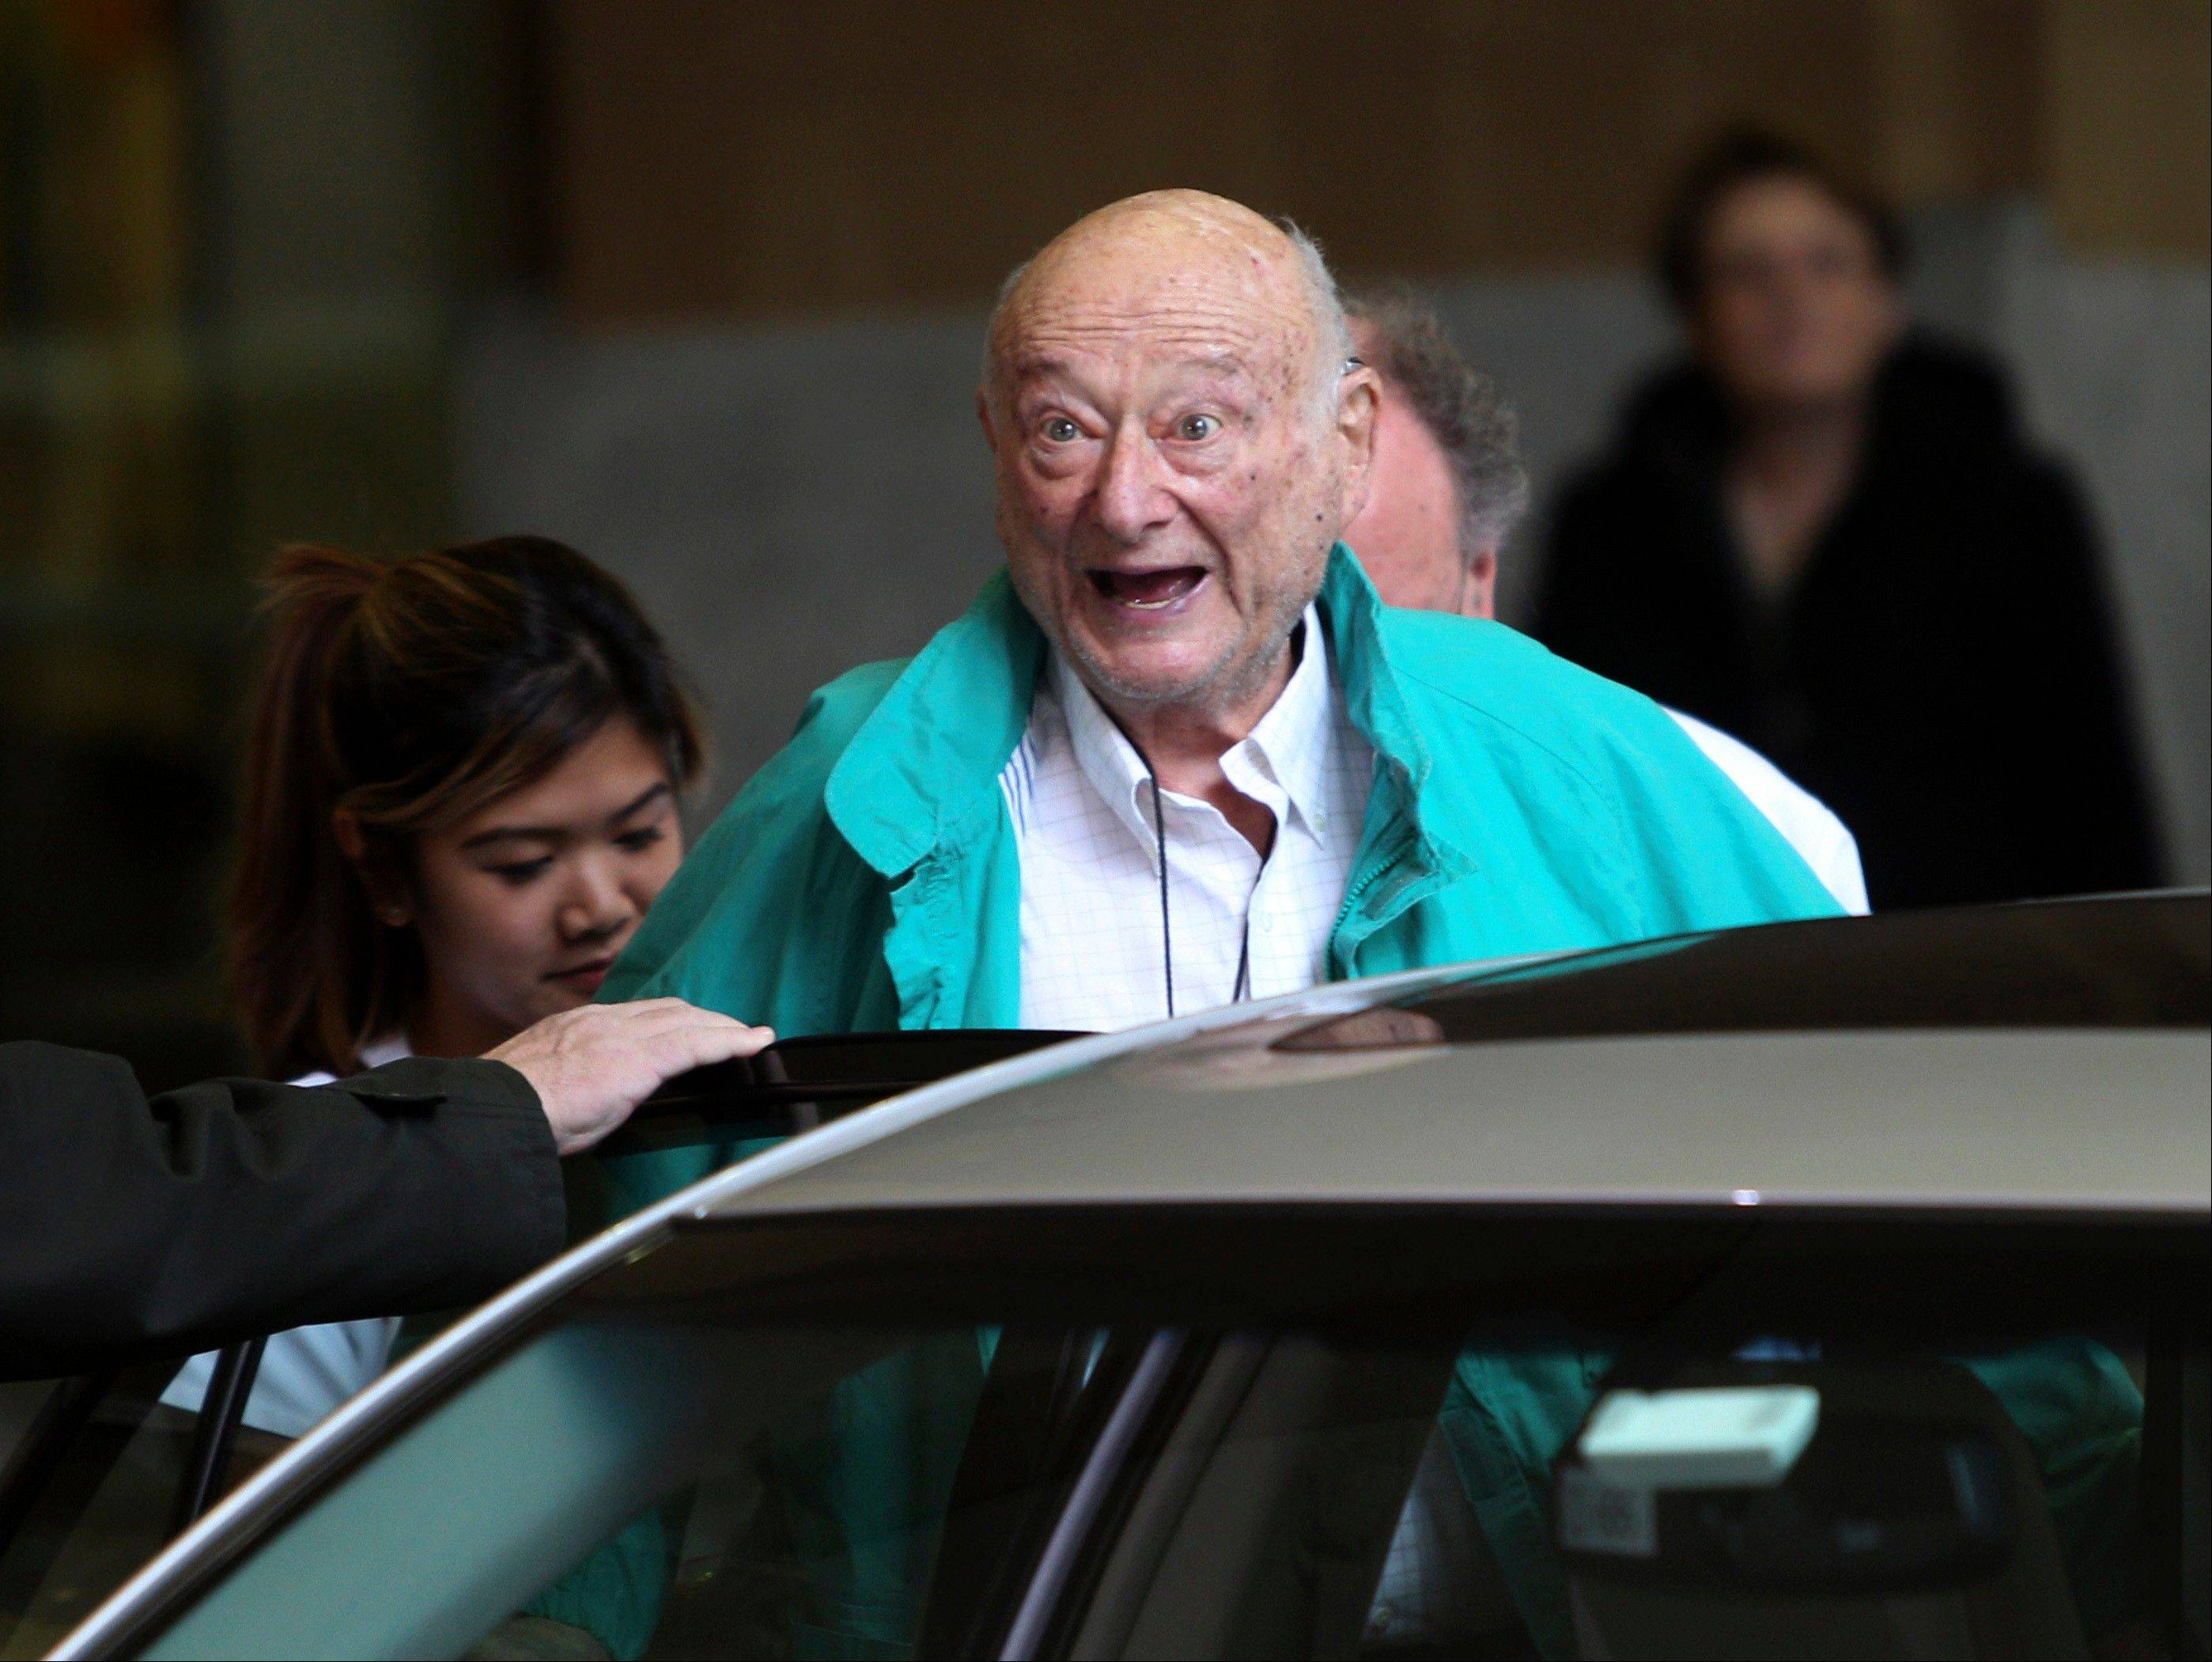 Former New York City Mayor Ed Koch, who died Friday from congestive heart failure, will be honored at his funeral today by former President Bill Clinton.